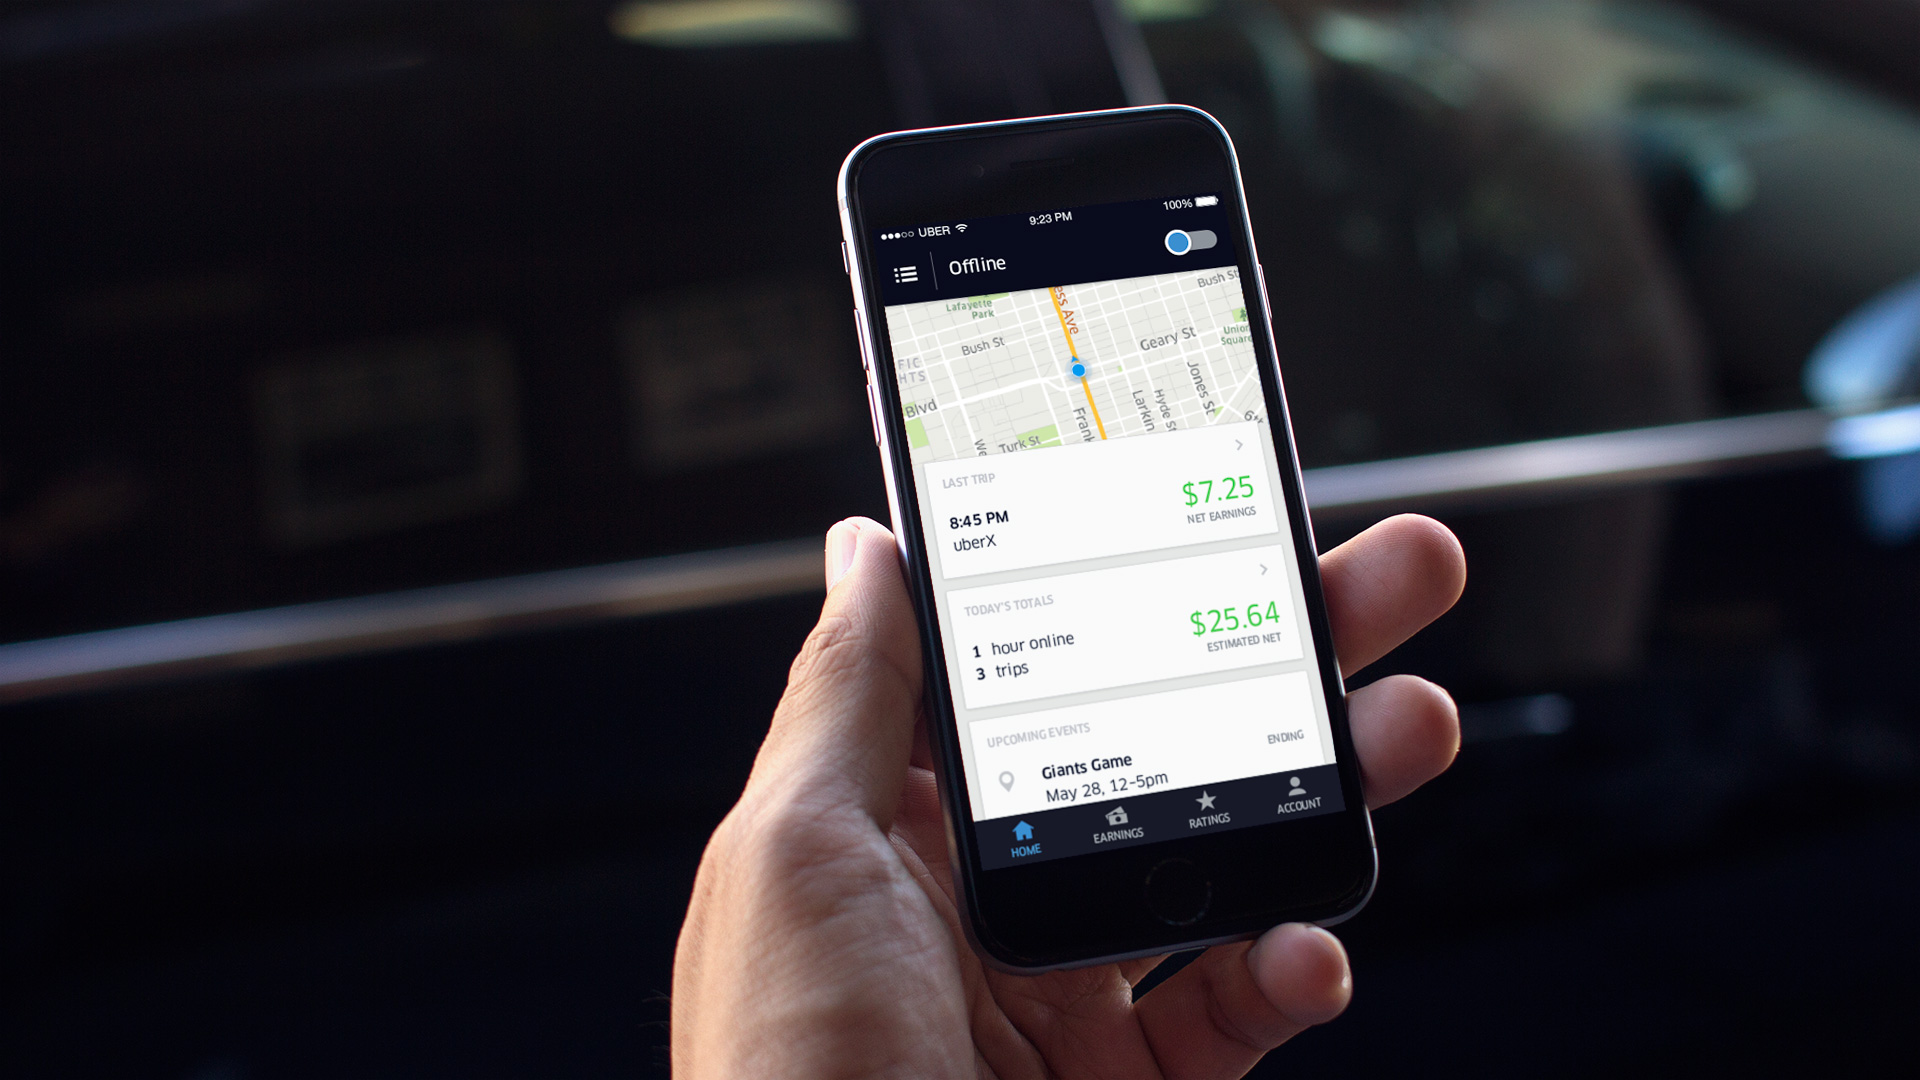 Things To Know About The Uber Driver App For IOS Uber Newsroom - Uber heat map us